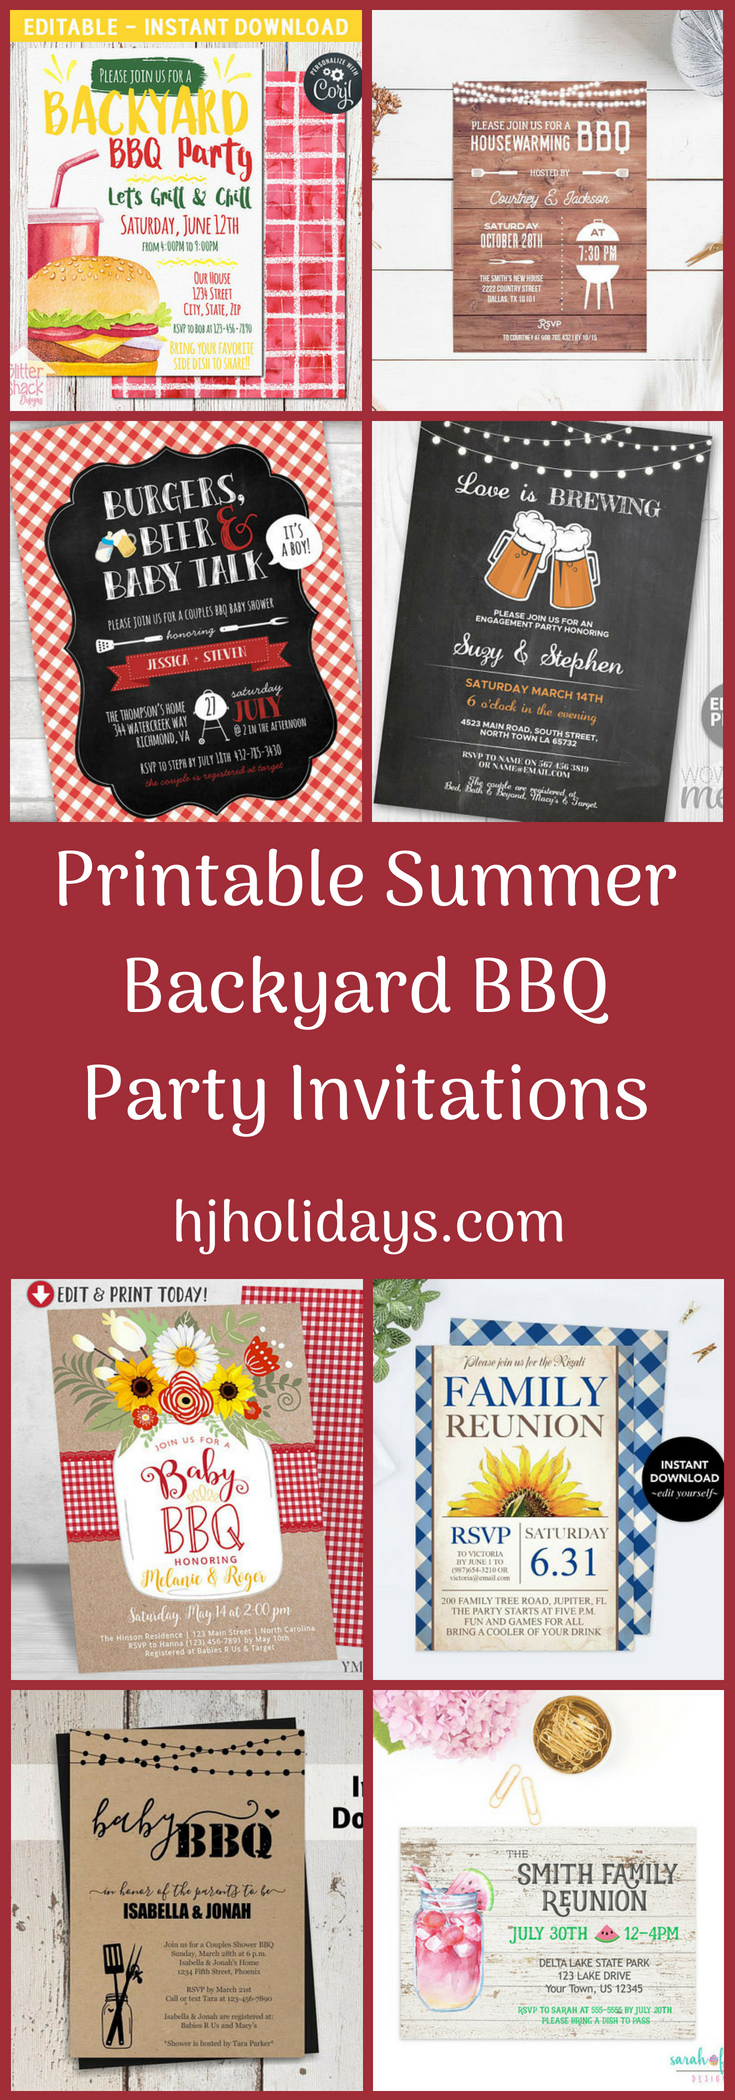 Printable Summer Backyard BBQ Party Invitations